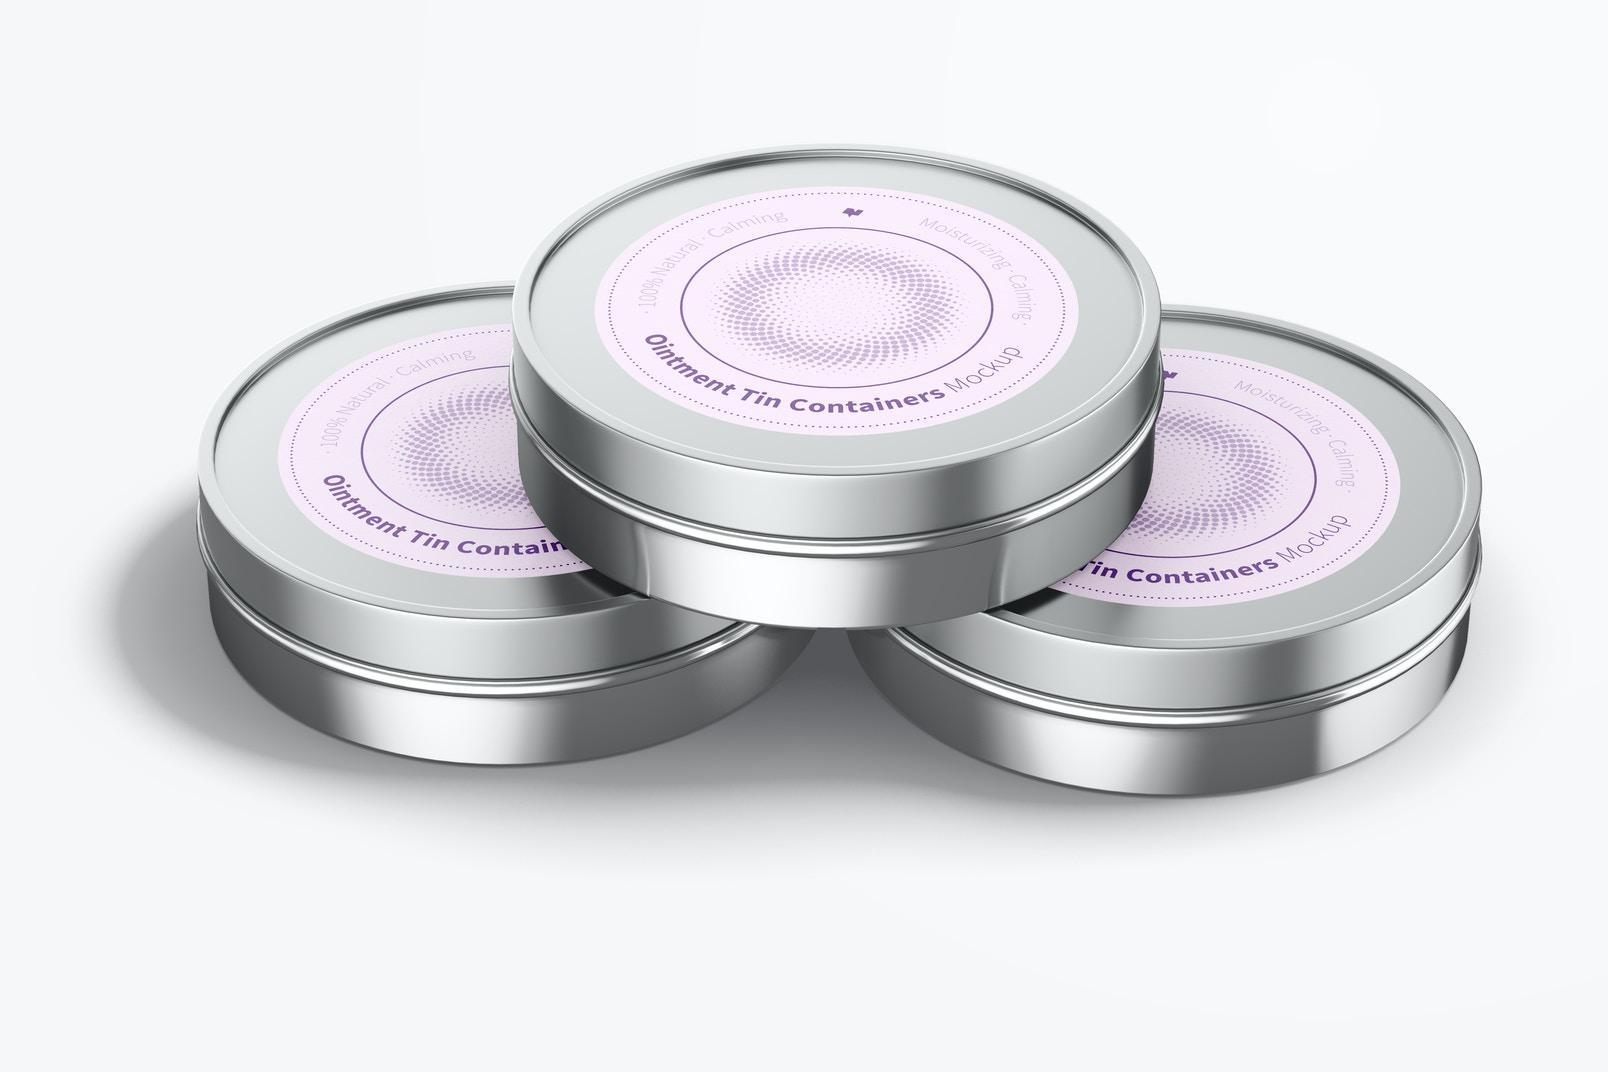 Ointment Tin Containers Mockup, Stacked